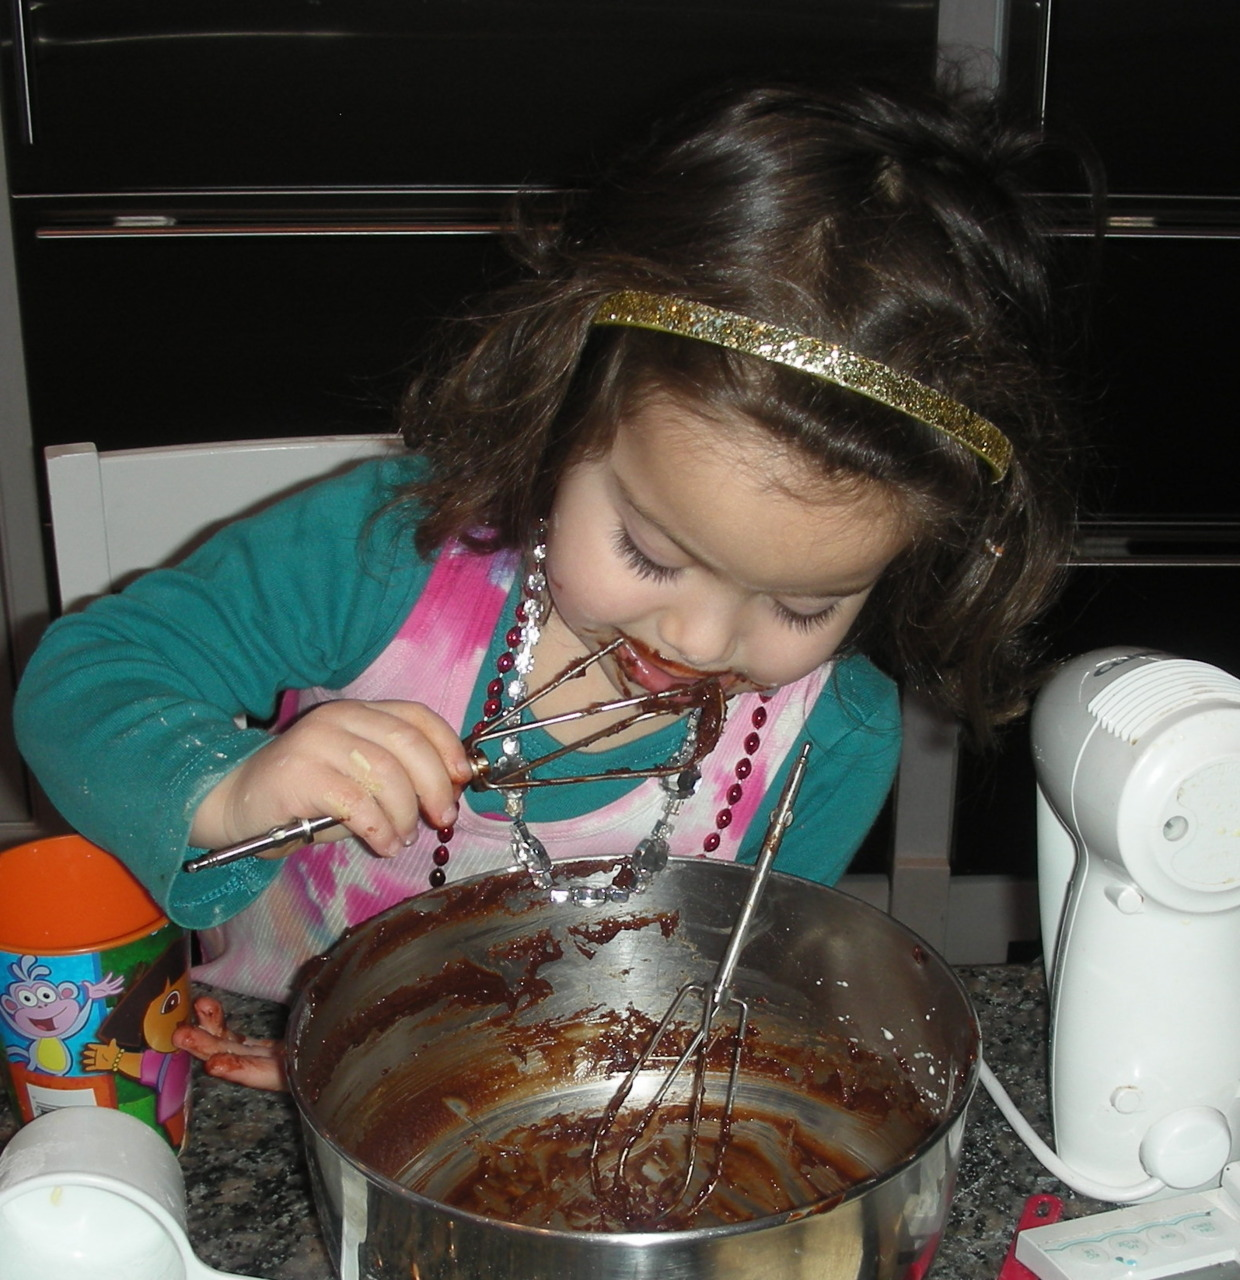 School's out. Make brownies. If you have a kid or a grandkid, make brownies with the kid or grandkid. That way you get delicious dessert, delicious photos and delicious memories. This picture shows my granddaughter Nina, almost 4, after making a batch of our favorite chocolate-chip brownies. Her brother and cousins weren't at my house so she had the beaters, spatula, wooden spoon and bowl all to herself. Check out the jewelry. She was wearing her finest plastic rubies, sapphires and diamonds. Here's the recipe; Chocolate Chip Brownies 4 ounces unsweetened chocolate 6 tablespoons unsalted butter 2 large eggs 1 cup sugar 3/4 cup all-purpose flour 3/4 teaspoon baking powder 1/2 teaspoon salt 1 teaspoon vanilla extract 1/2 cup semisweet chocolate chips Preheat the oven to 350 degrees. Lightly grease an 8-inch square baking pan. Put the chocolate and butter in the top part of a double boiler over barely simmering water. Cook, stirring occasionally, until the chocolate and butter have melted. Stir to blend the ingredients thoroughly. Remove the top part of the double boiler from the bottom pan and set it aside to cool. Combine the eggs and sugar in a mixing bowl and beat them with an electric beater set at medium speed for 2-3 minutes or until thick, light and well-blended. Add the flour, baking powder and salt and blend ingredients thoroughly. Stir in the vanilla extract. Add the chocolate-butter mixture and blend ingredients thoroughly. Stir in the chocolate chips. Spoon the batter into the prepared pan. Bake for 28 minutes or until a cake tester inserted into the center comes out clean. Cool the brownies in the pan. Cut into 16 squares. Makes 16